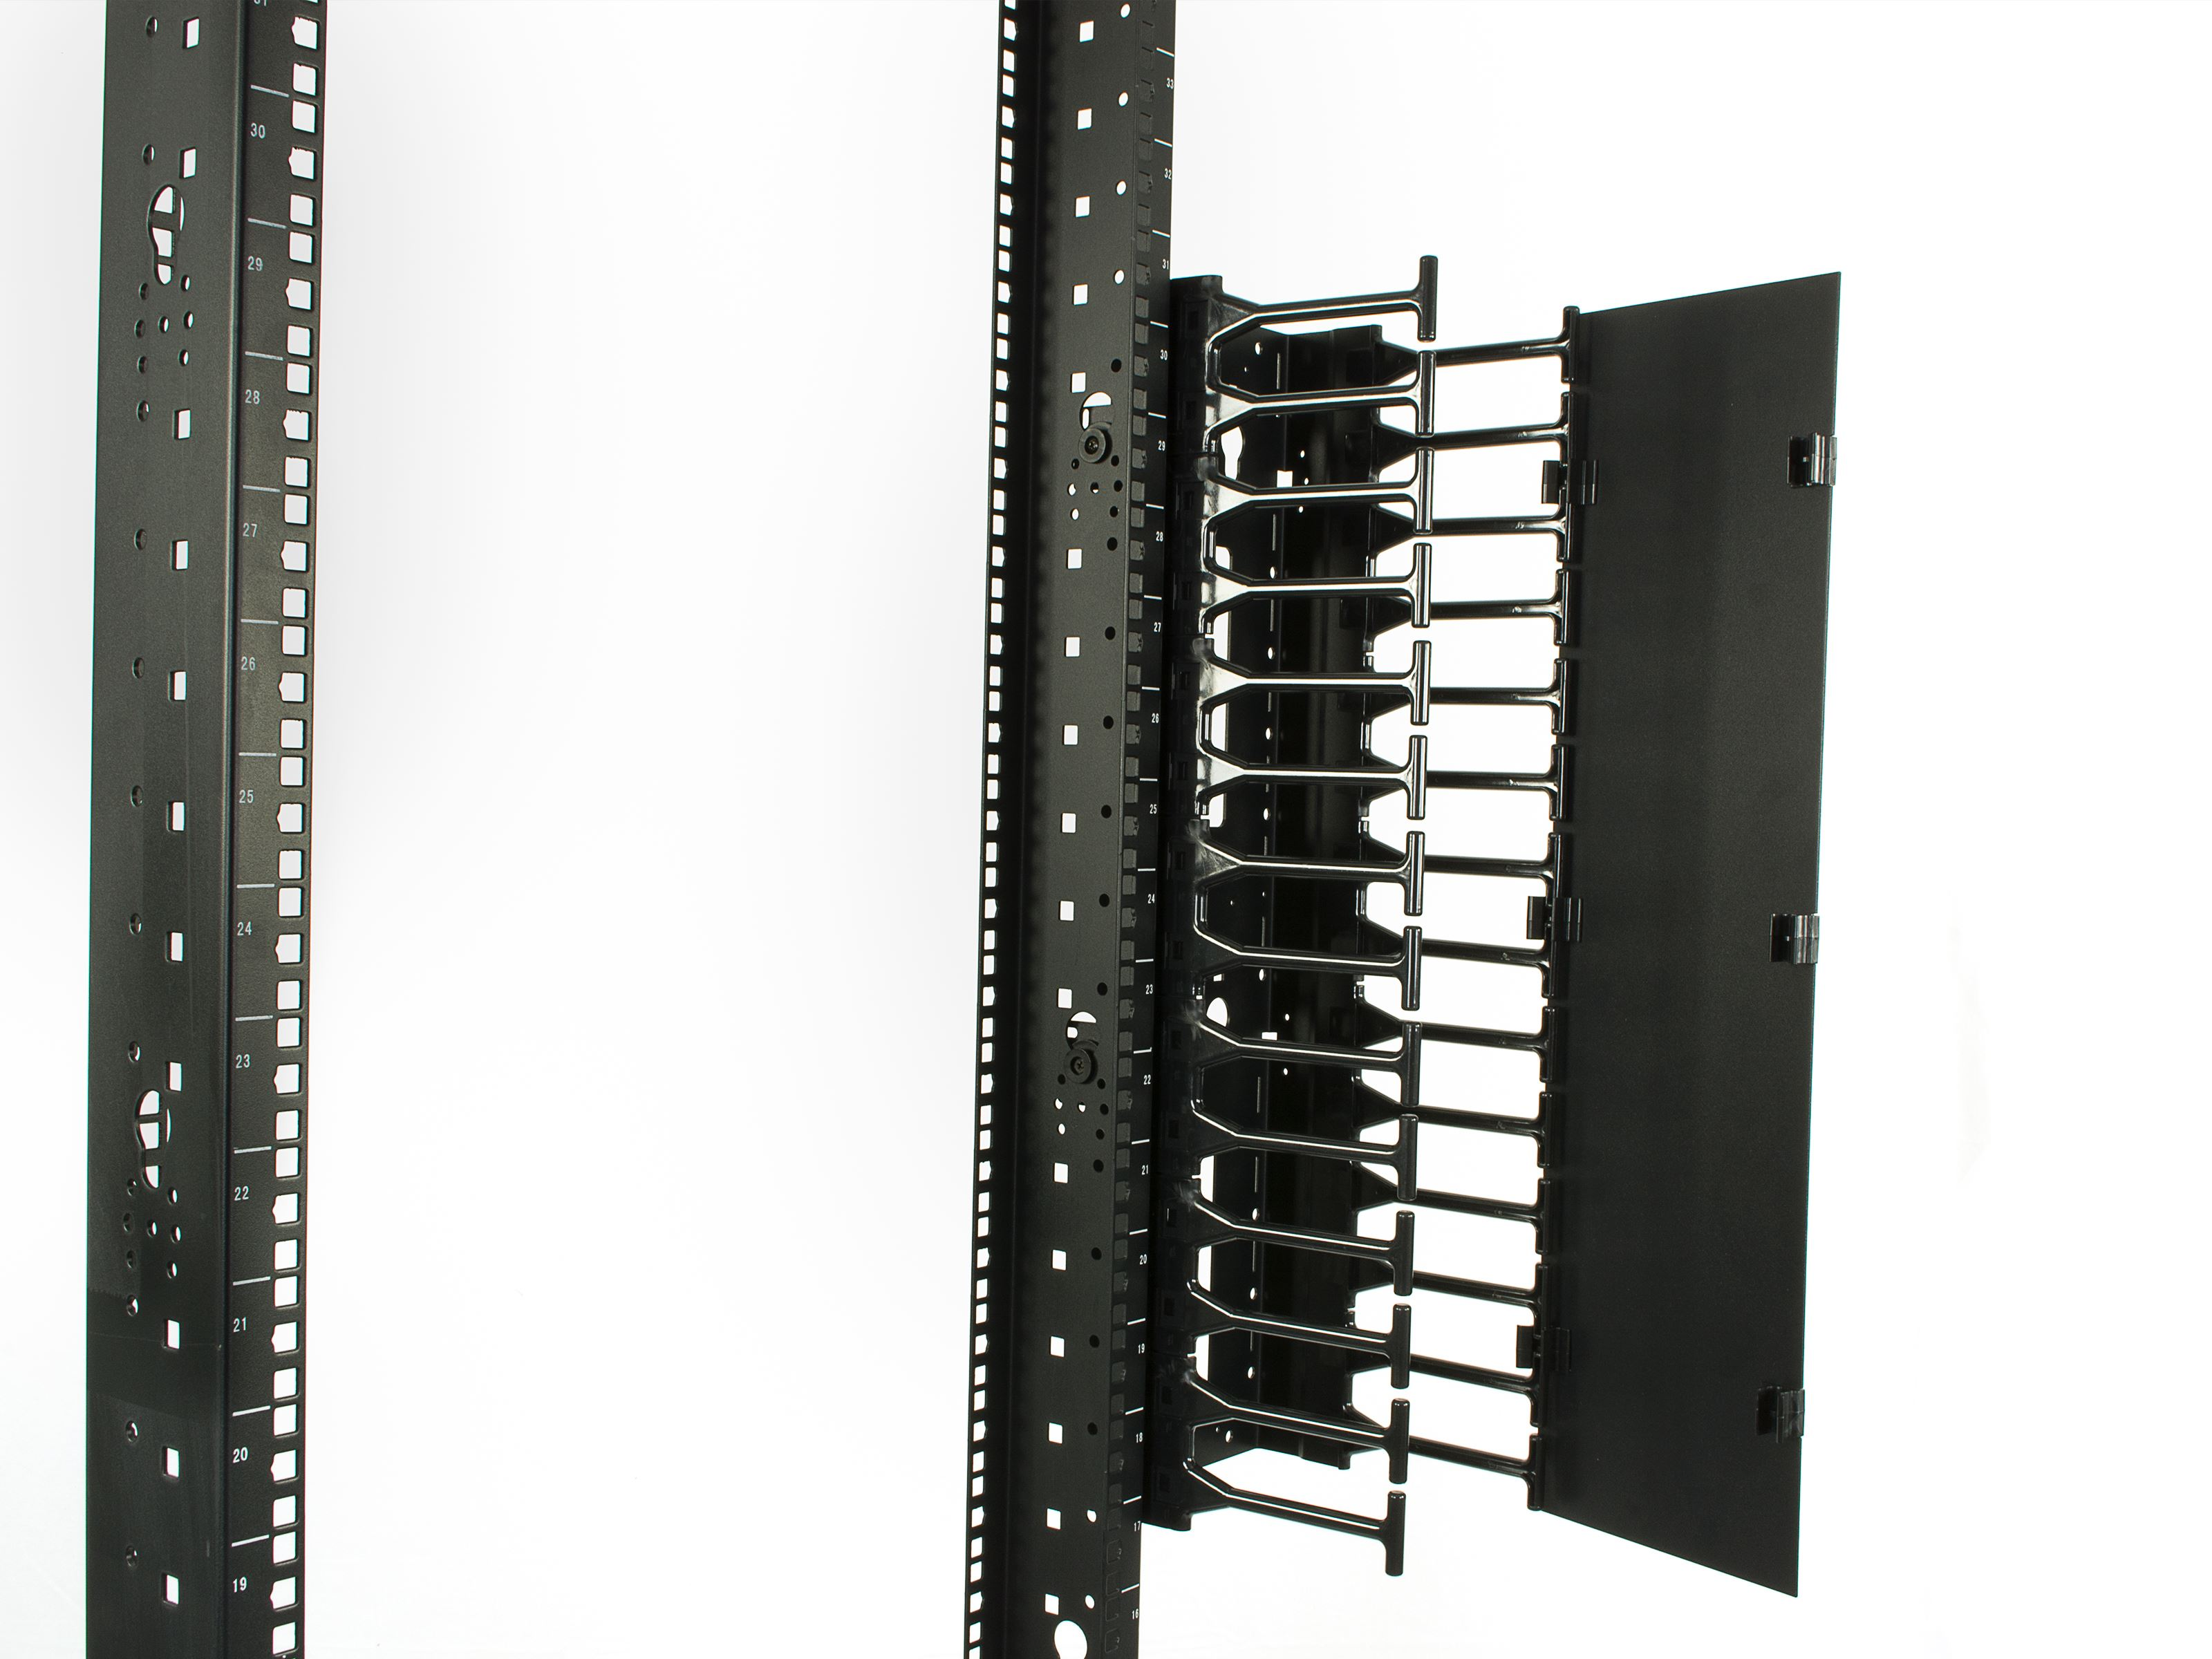 2-Post Network Relay Rack 45U Steel M6 Rails | Computer Cable Store